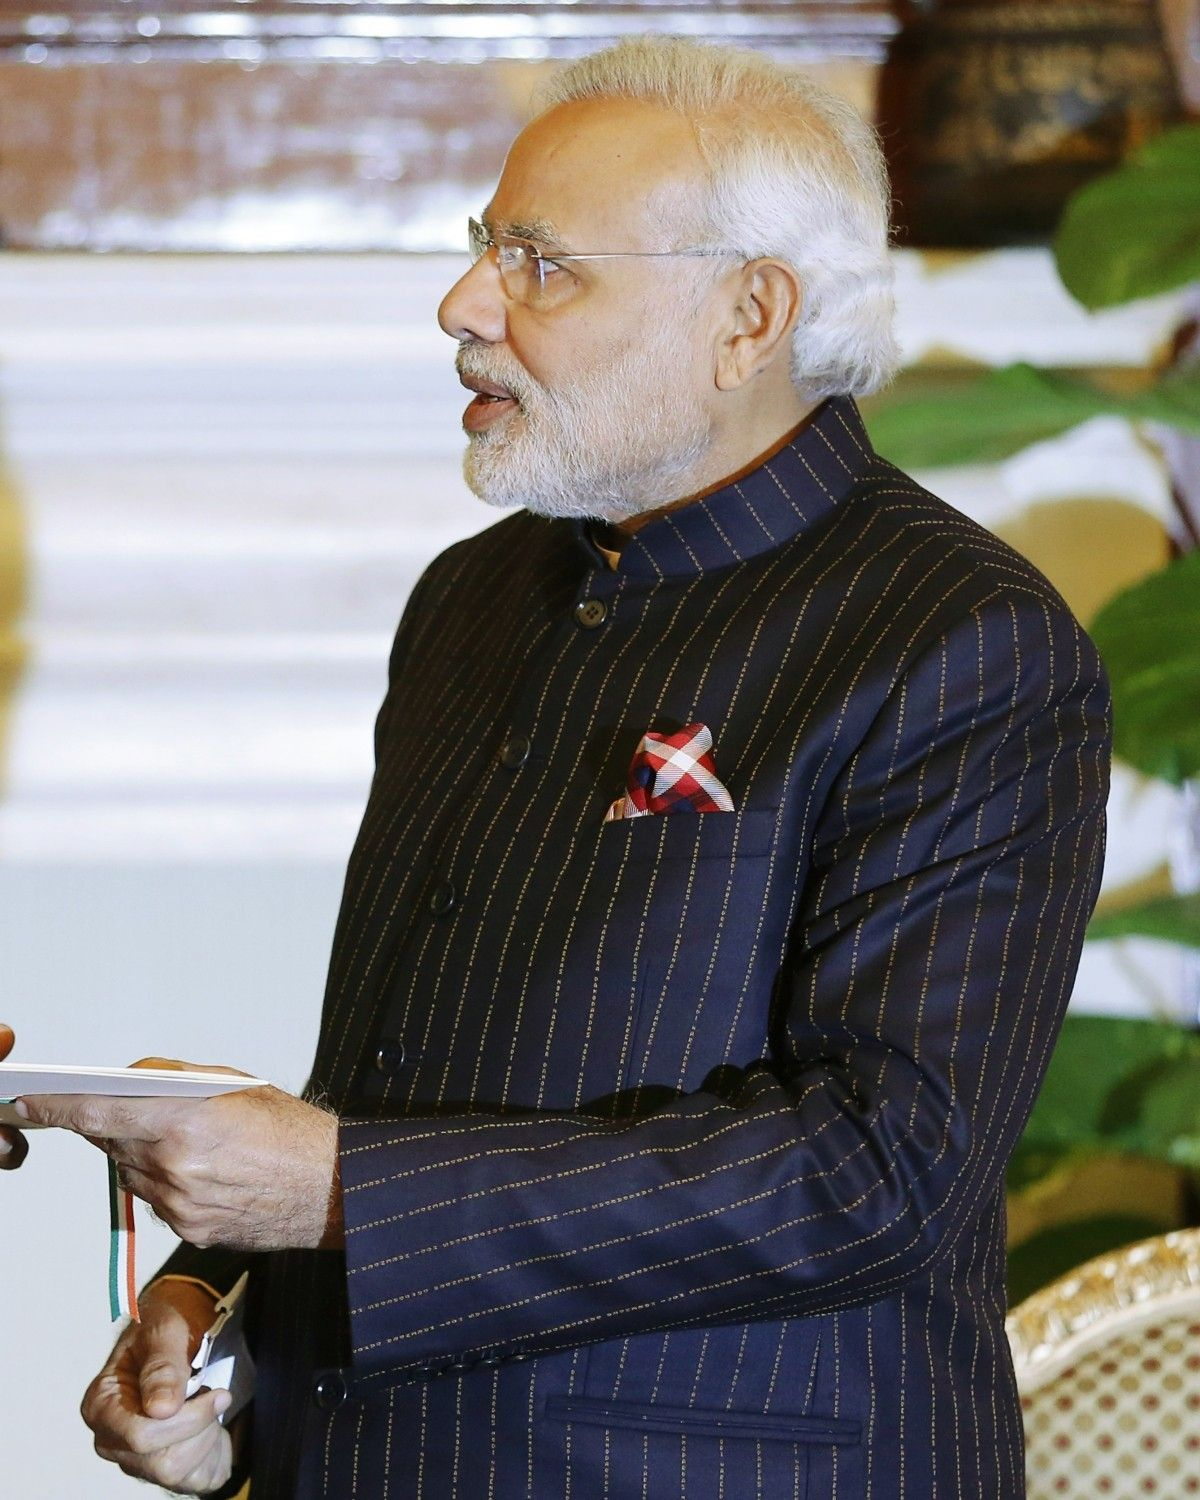 From pinstripe suit to traditional hats, Narendra Modi is a politician who is also defining style [PHOTOS]